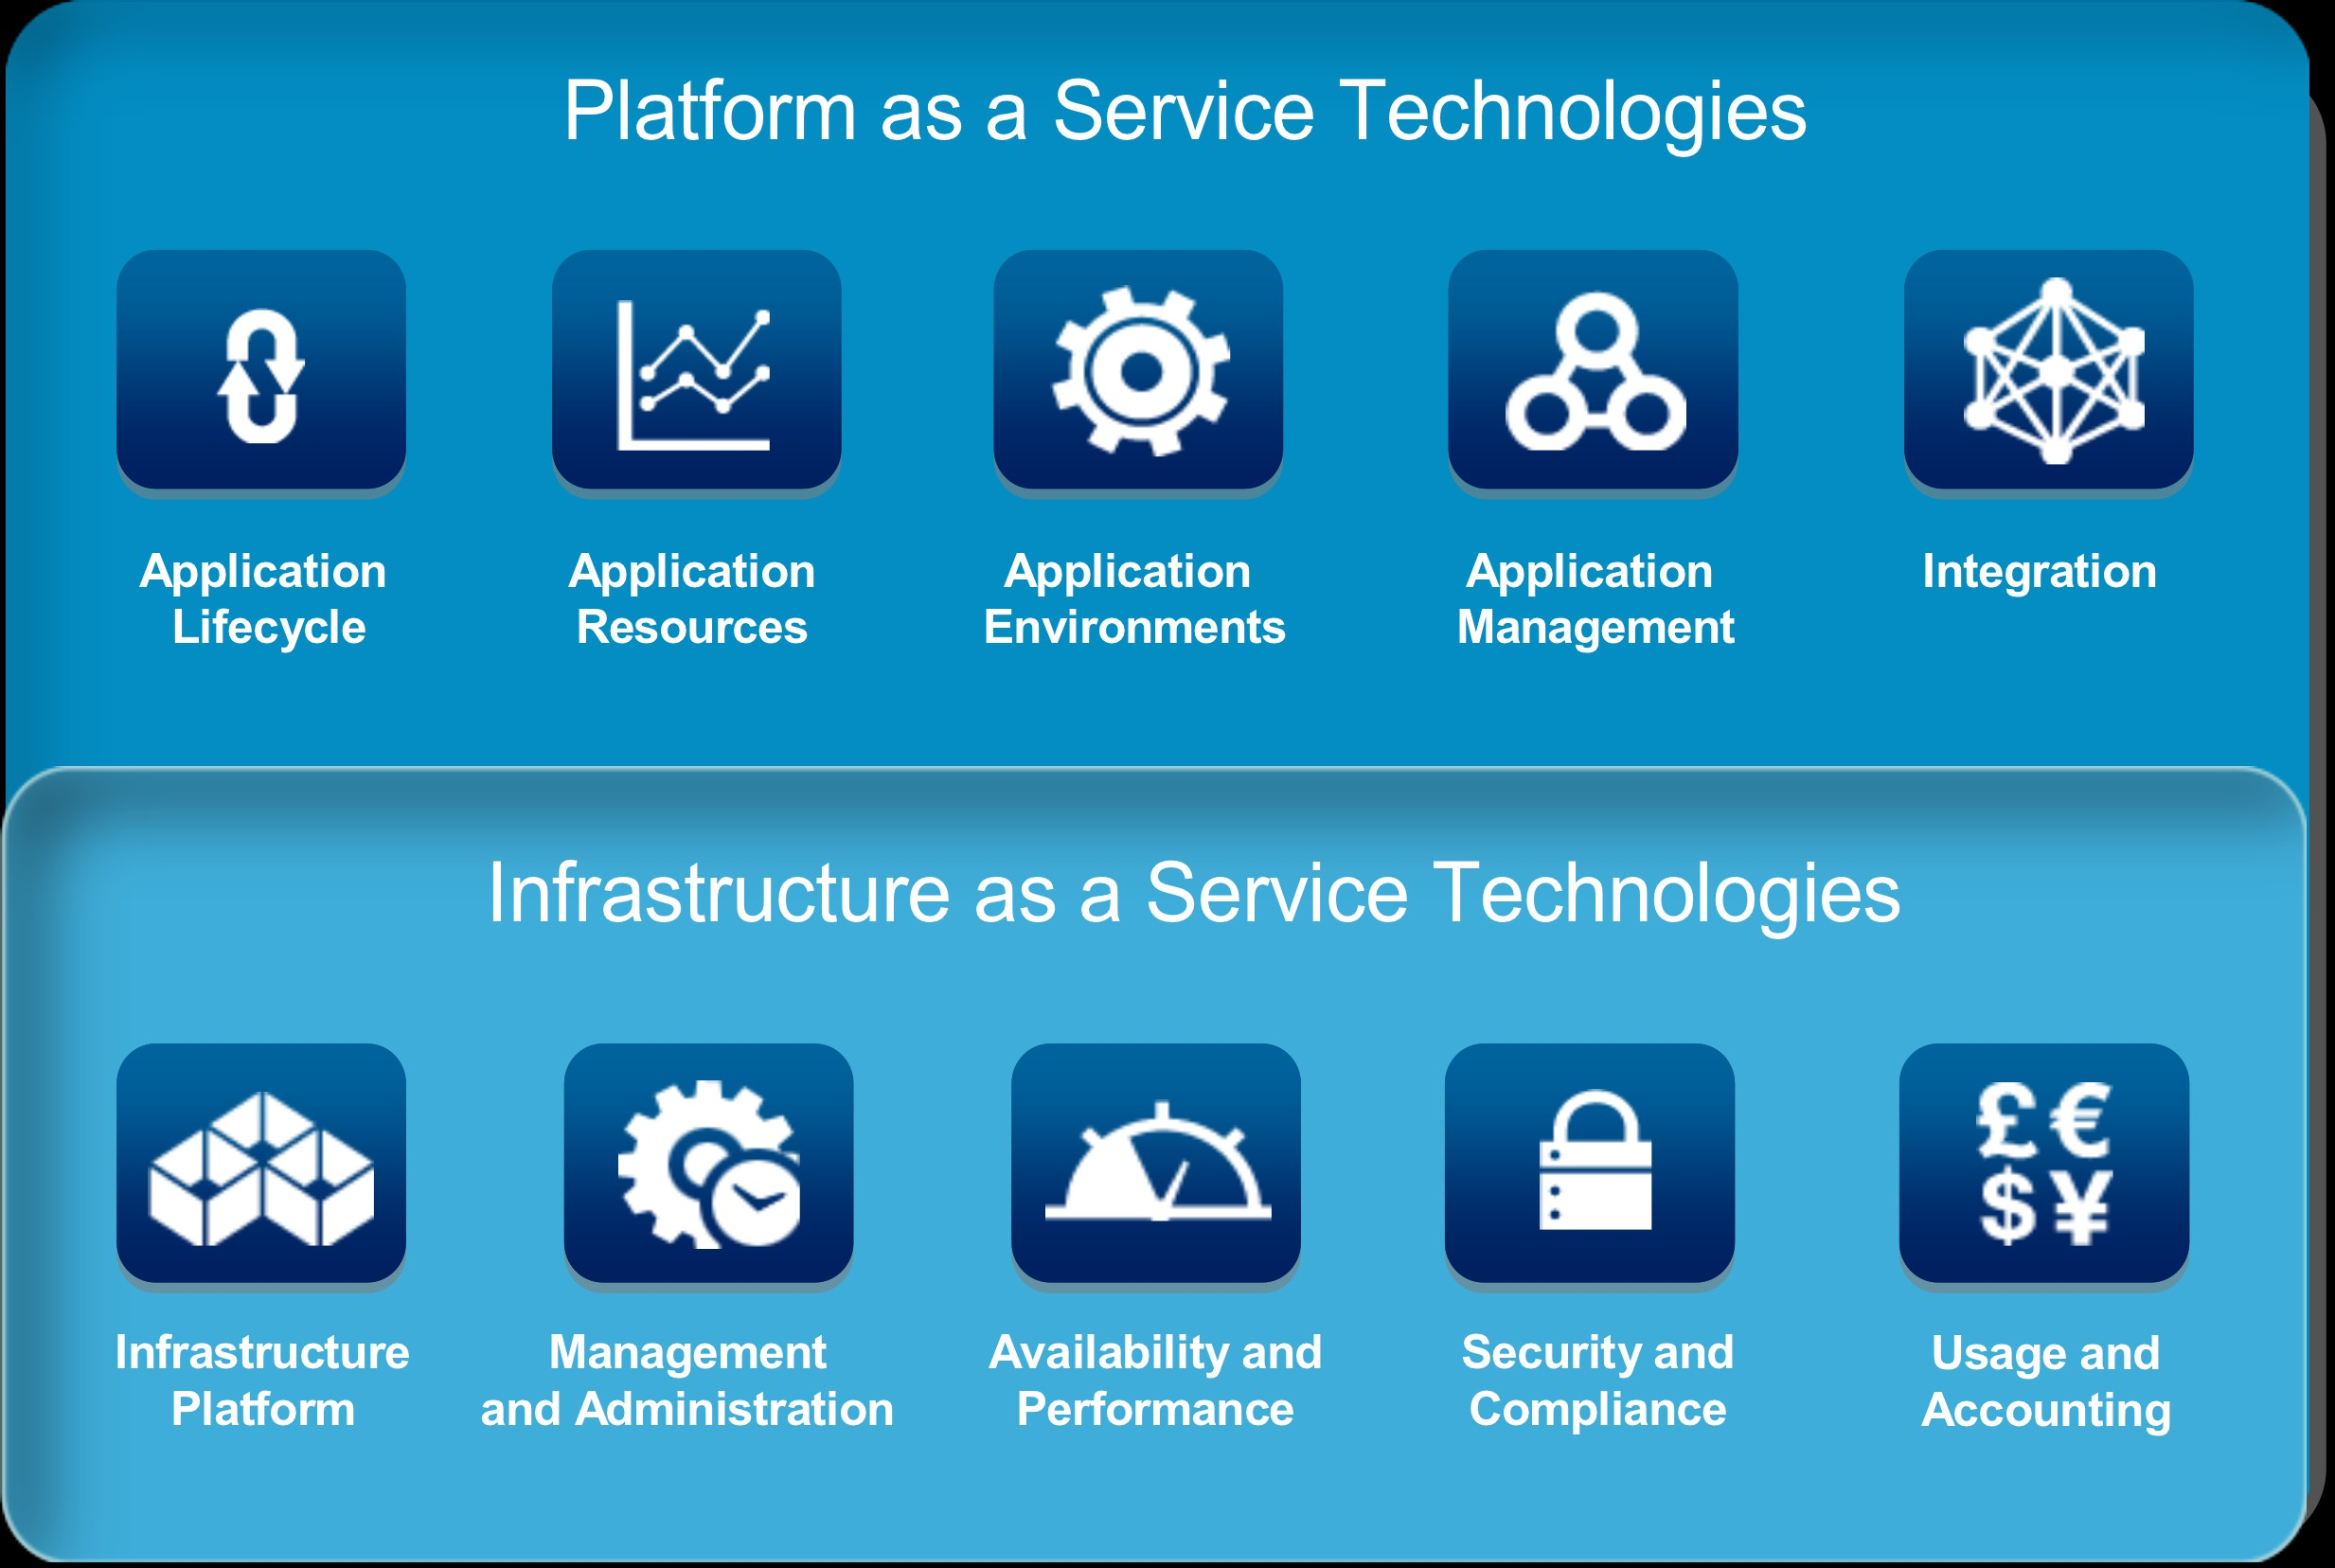 Foundation Services Technologies pour Cloud Privé et Hybride (IaaS & PaaS) IBM SmartCloud Foundation: IBM SmartCloud Application Services : De nouvelles technologies pour déployer un Cloud privé ou